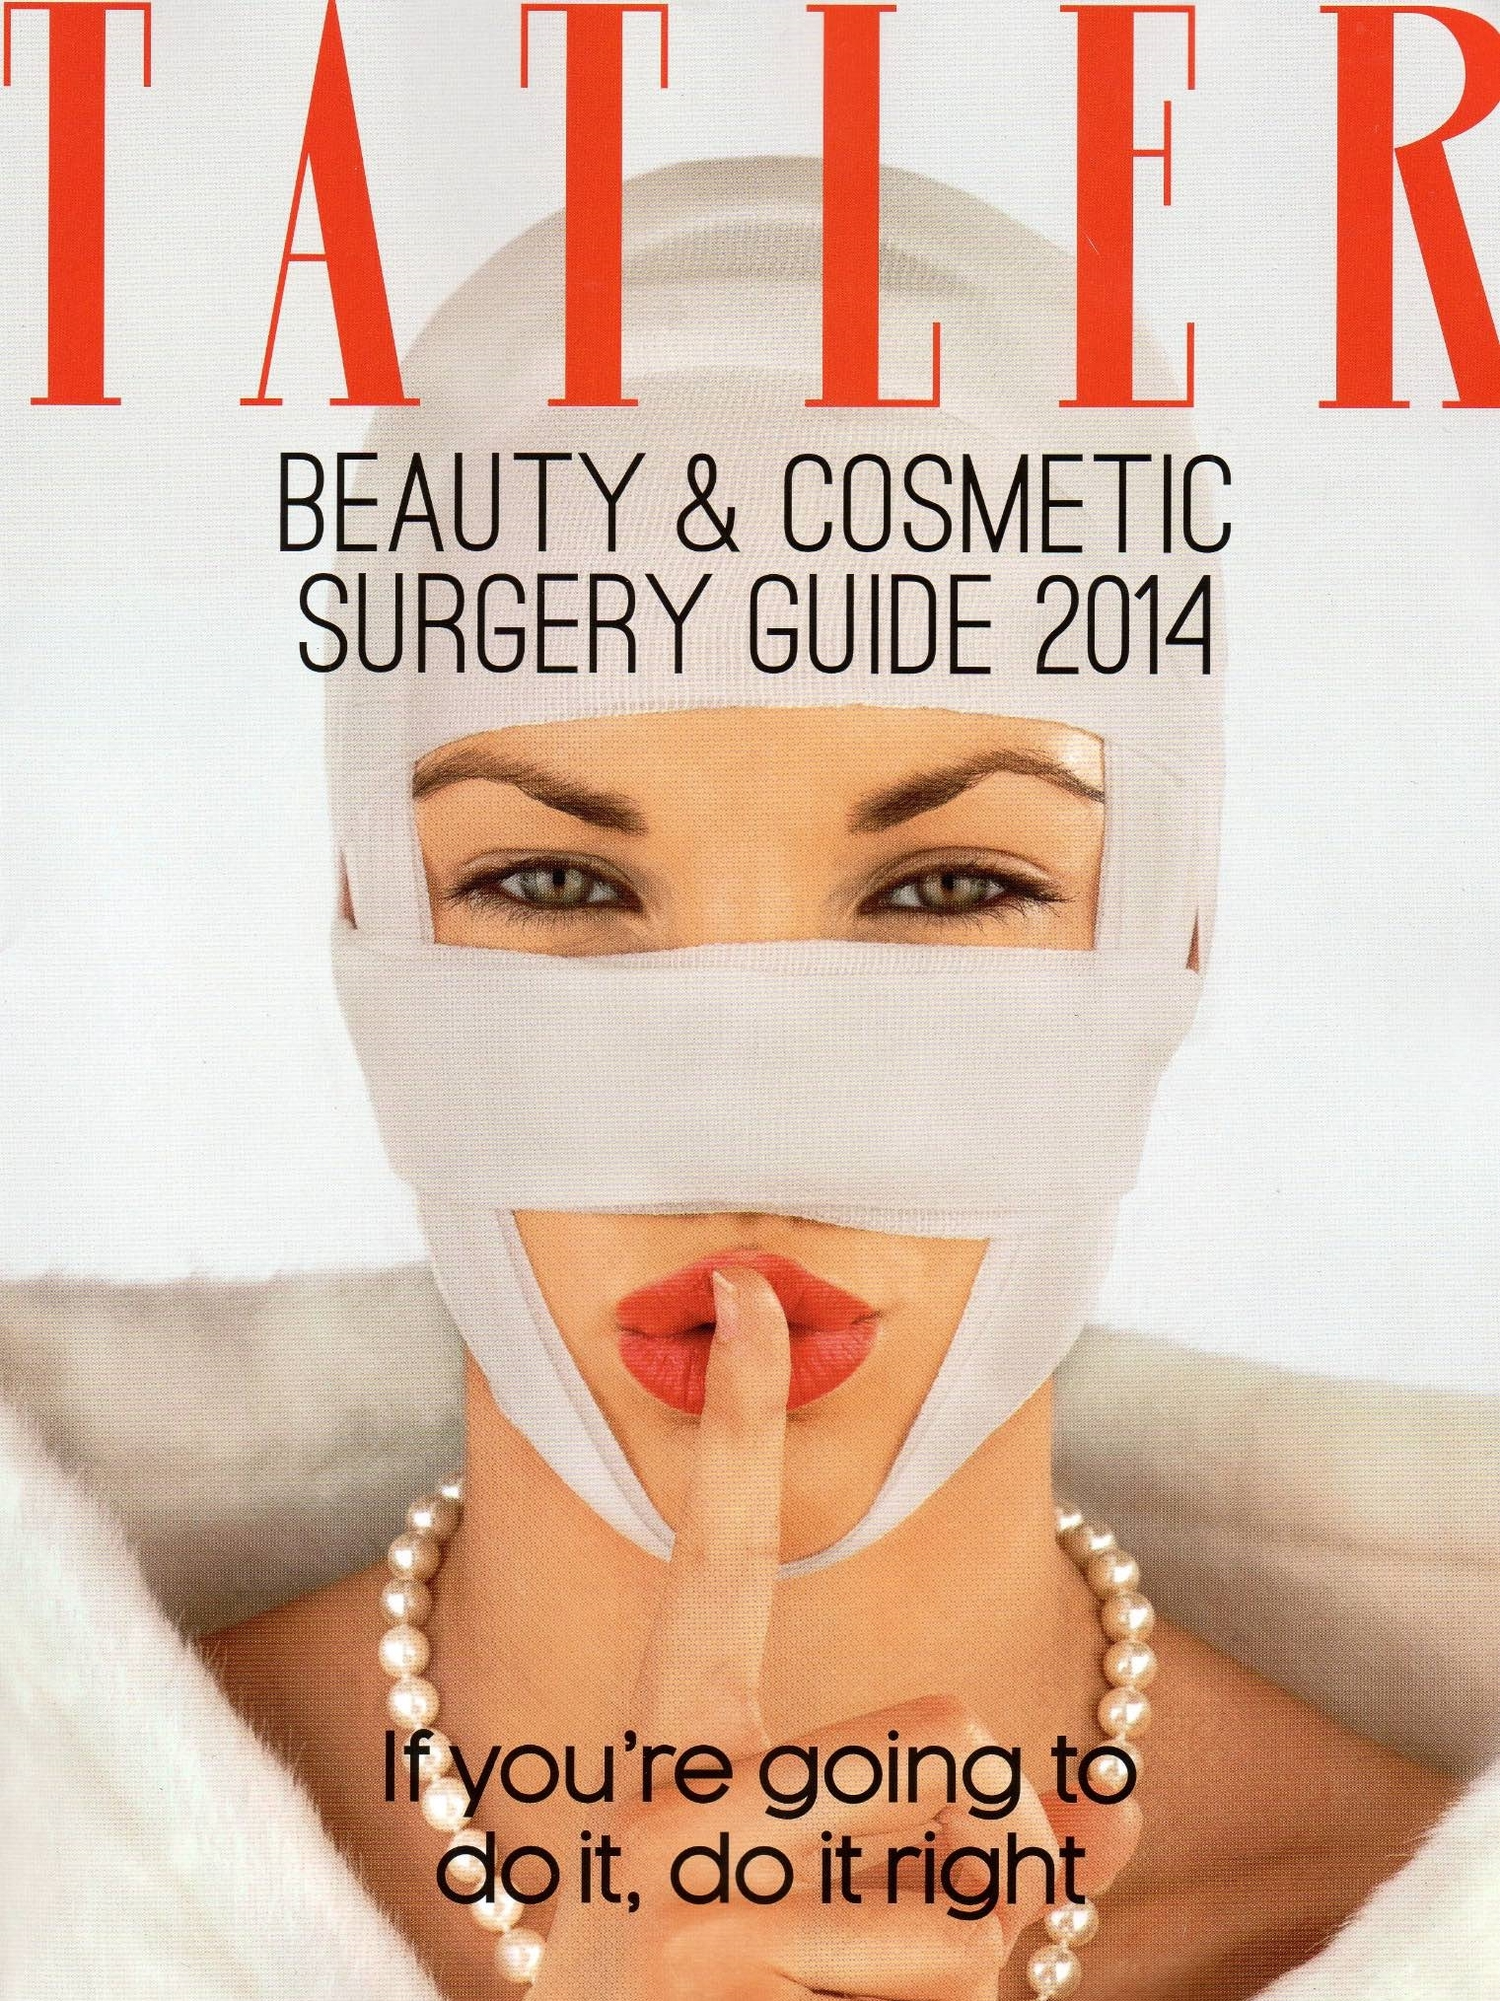 Tatler Beauty & Cosmetic Surgery Guide 2014 - Dr Kremer top for facelifts